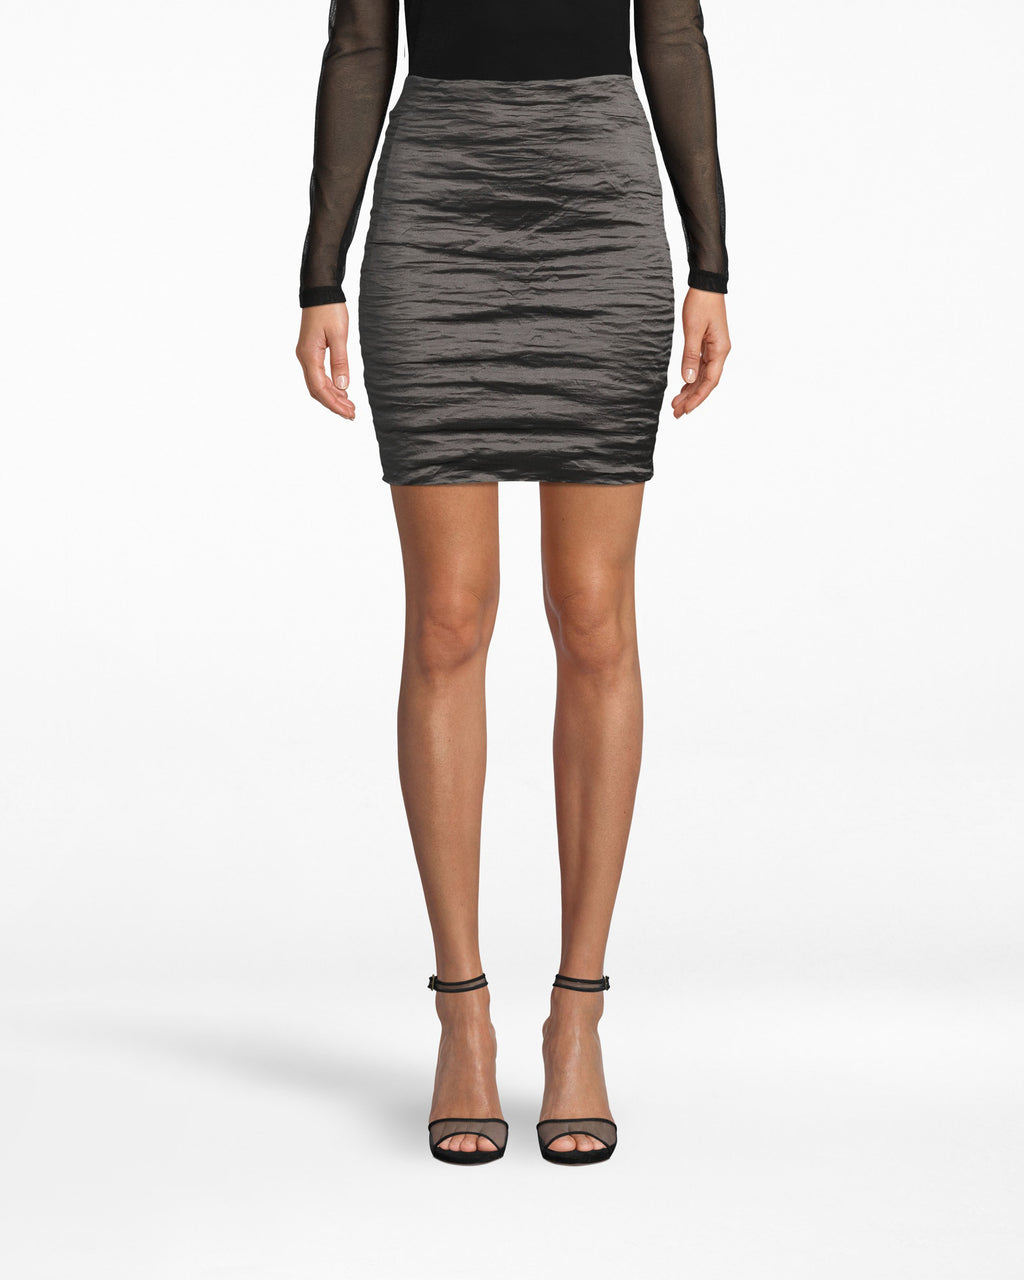 "BH10007 - TECHNO METAL MINI SKIRT - bottoms - skirts - Kick it. Our Techno Metal Mini Skirt features the signature textured, ""shiny"" appearance that makes it look so elegant. The back zipper is exposed and the hem falls above the knee."